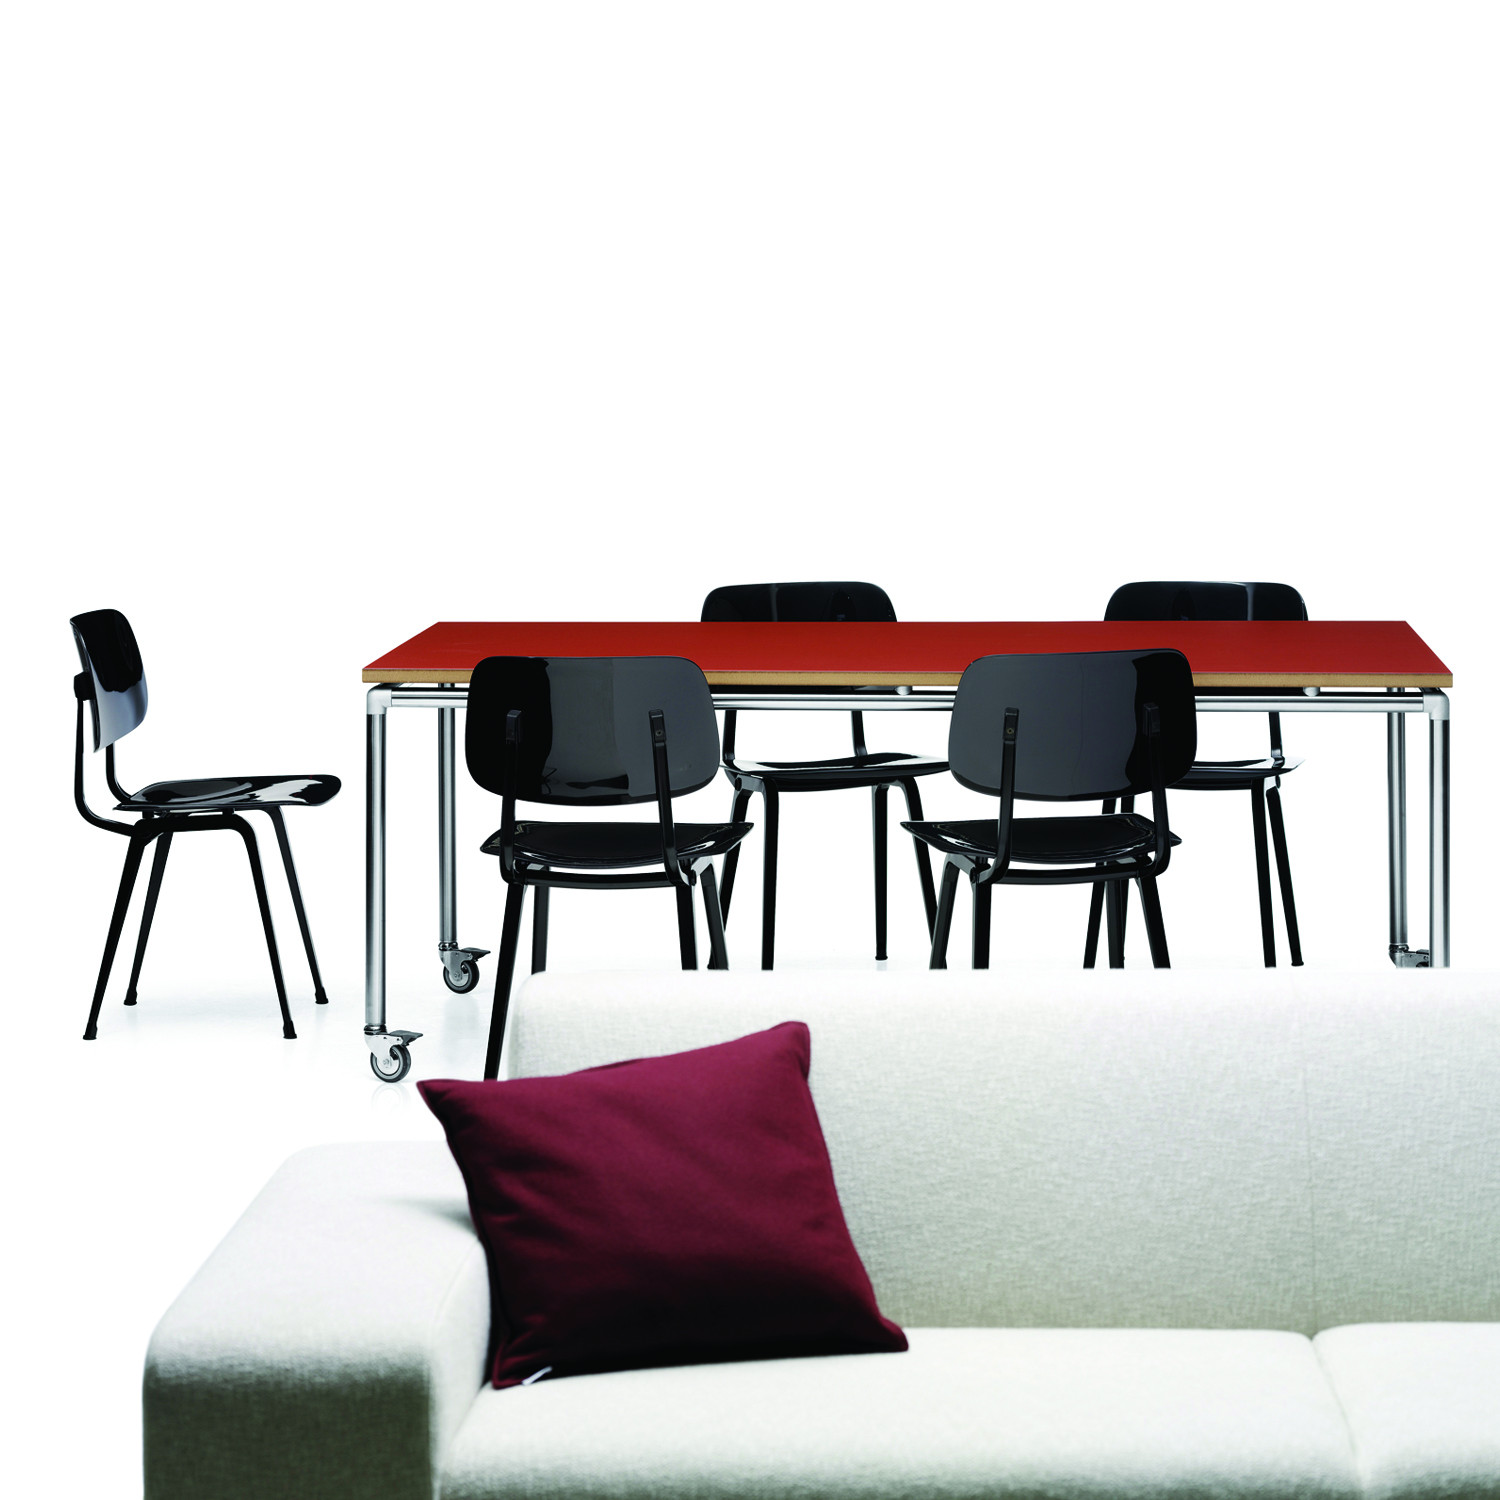 Move-it Table